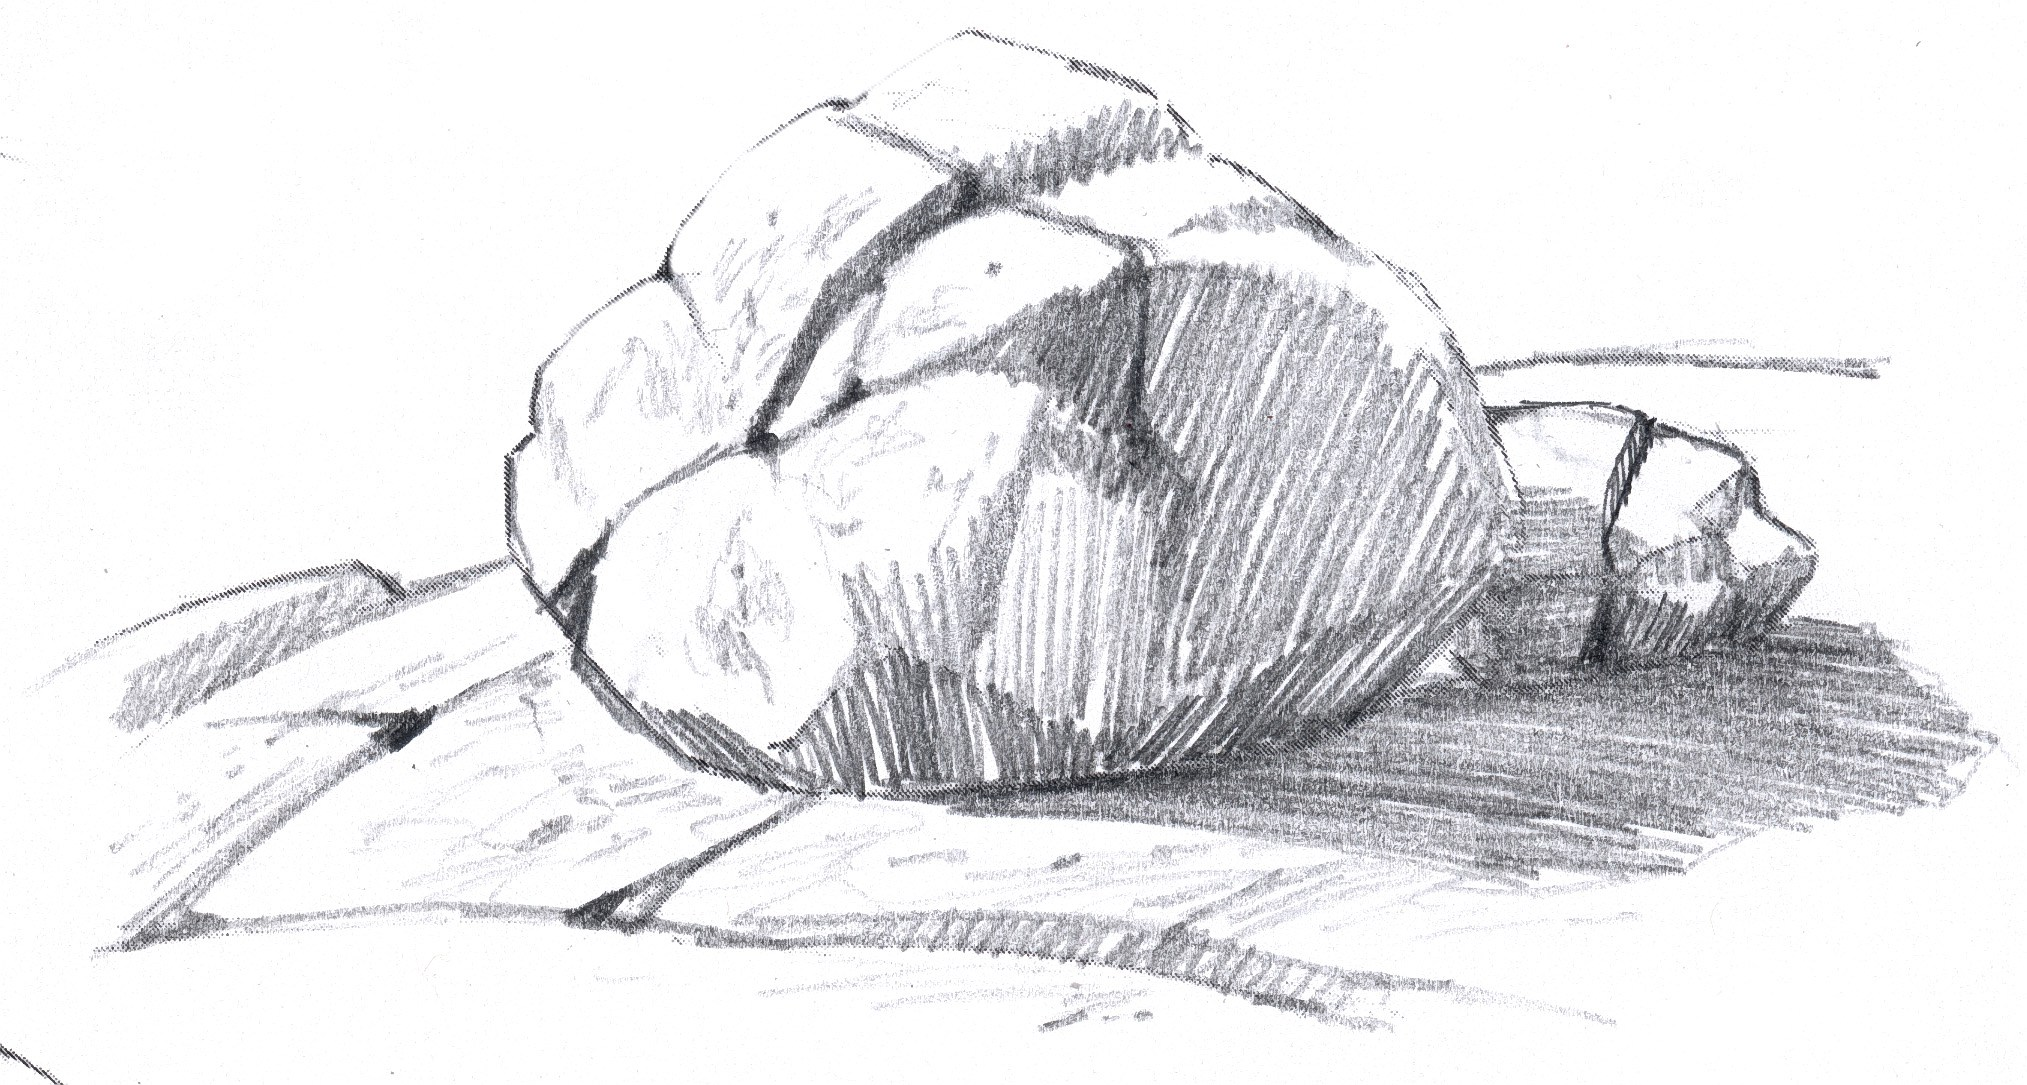 Drawn rock realistic Muir How Rocks to Draw